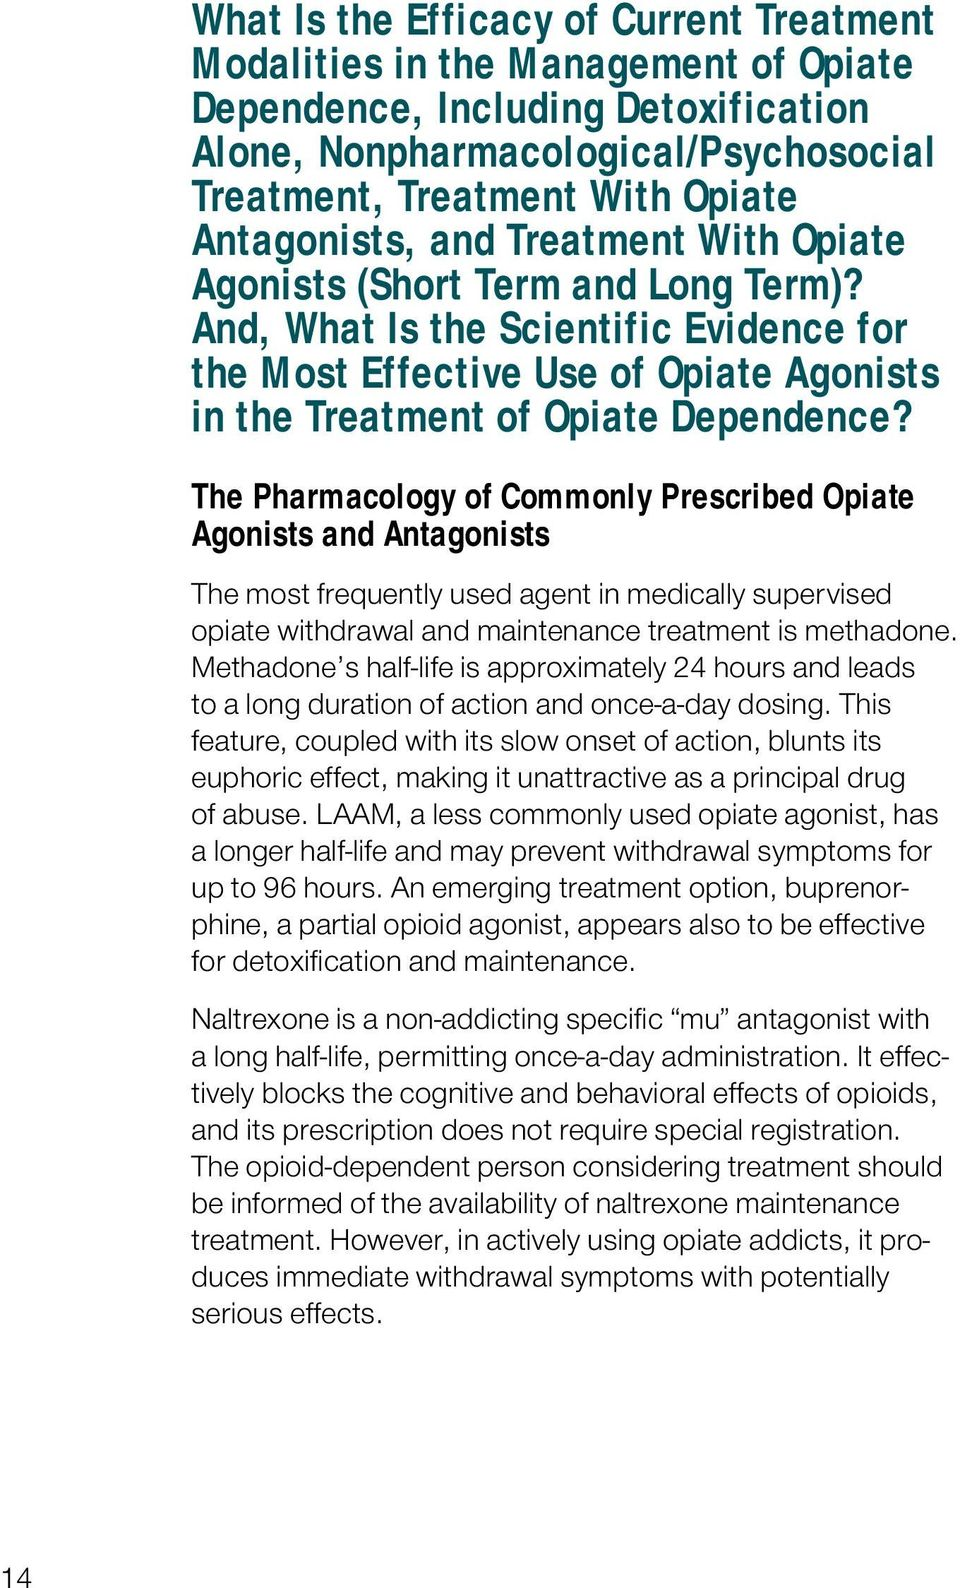 The Pharmacology of Commonly Prescribed Opiate Agonists and Antagonists The most frequently used agent in medically supervised opiate withdrawal and maintenance treatment is methadone.